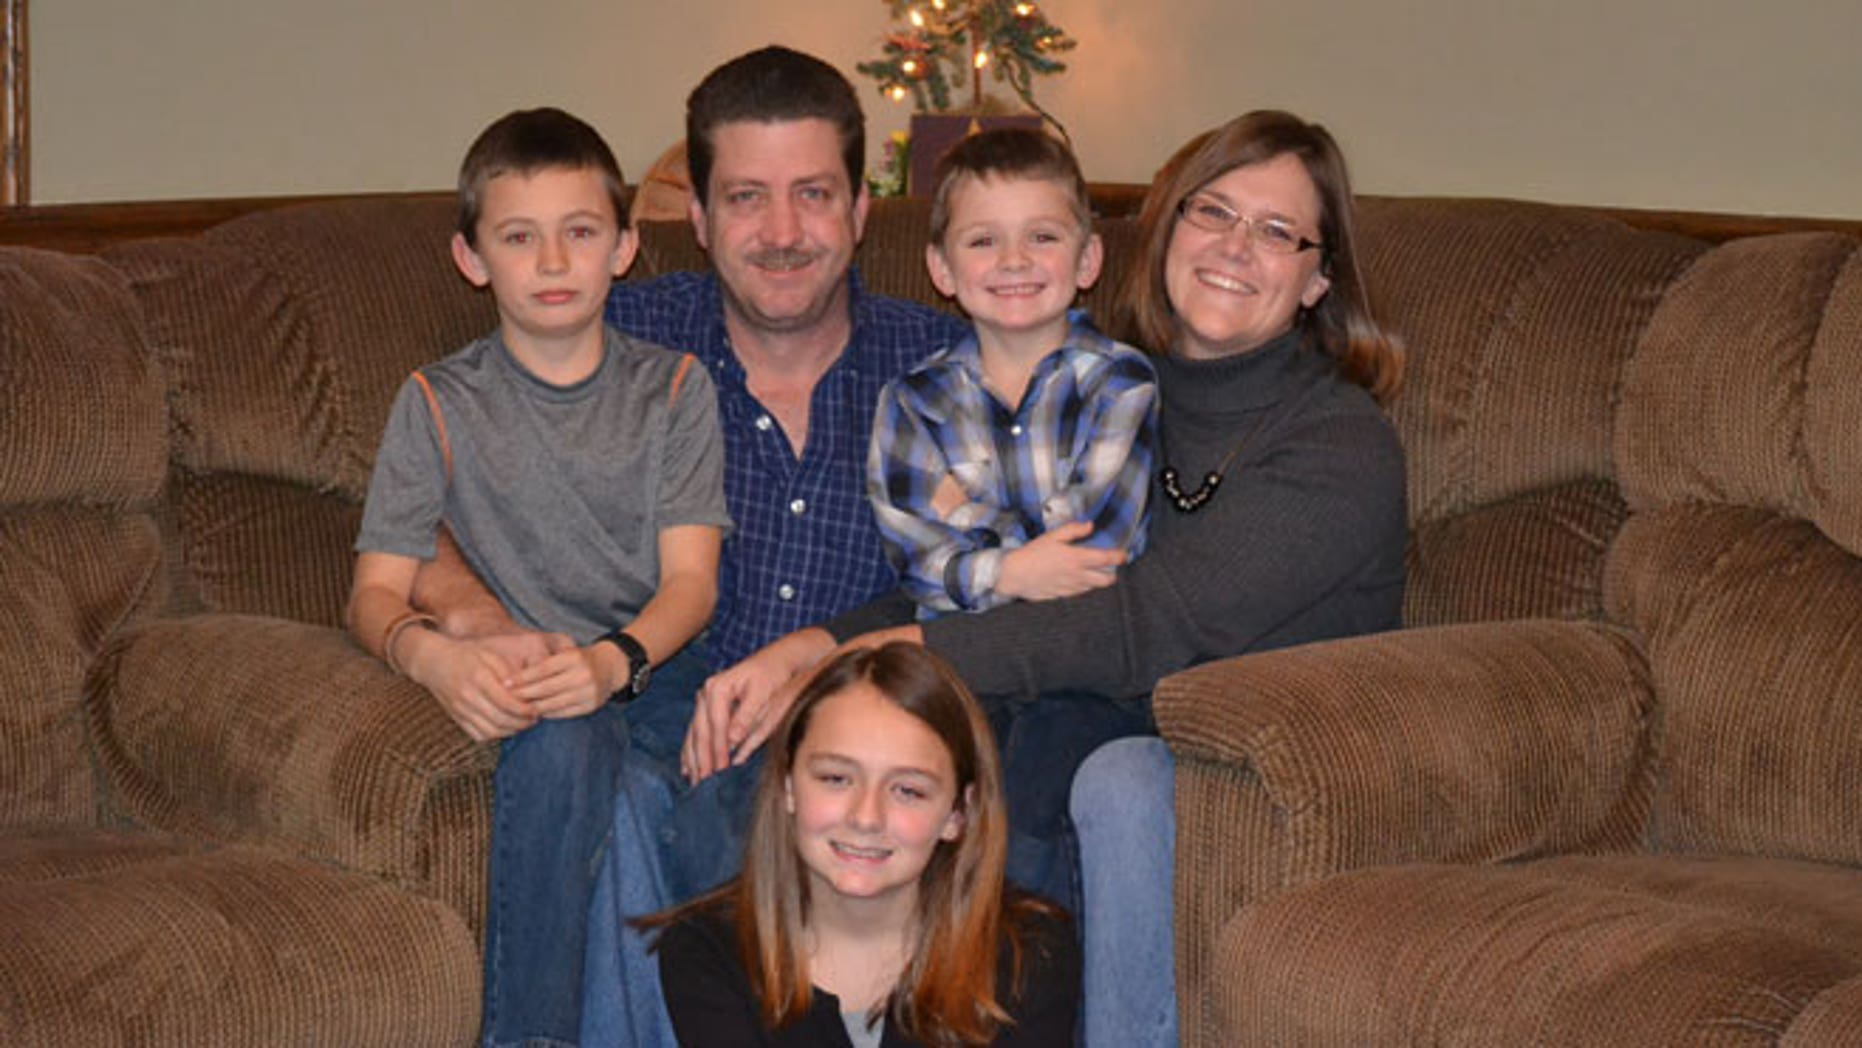 From back to center: Mandy and Jeff Holt, Ethan, 11 (left), Elliot, 7 (right), and Emily, 15 (center).